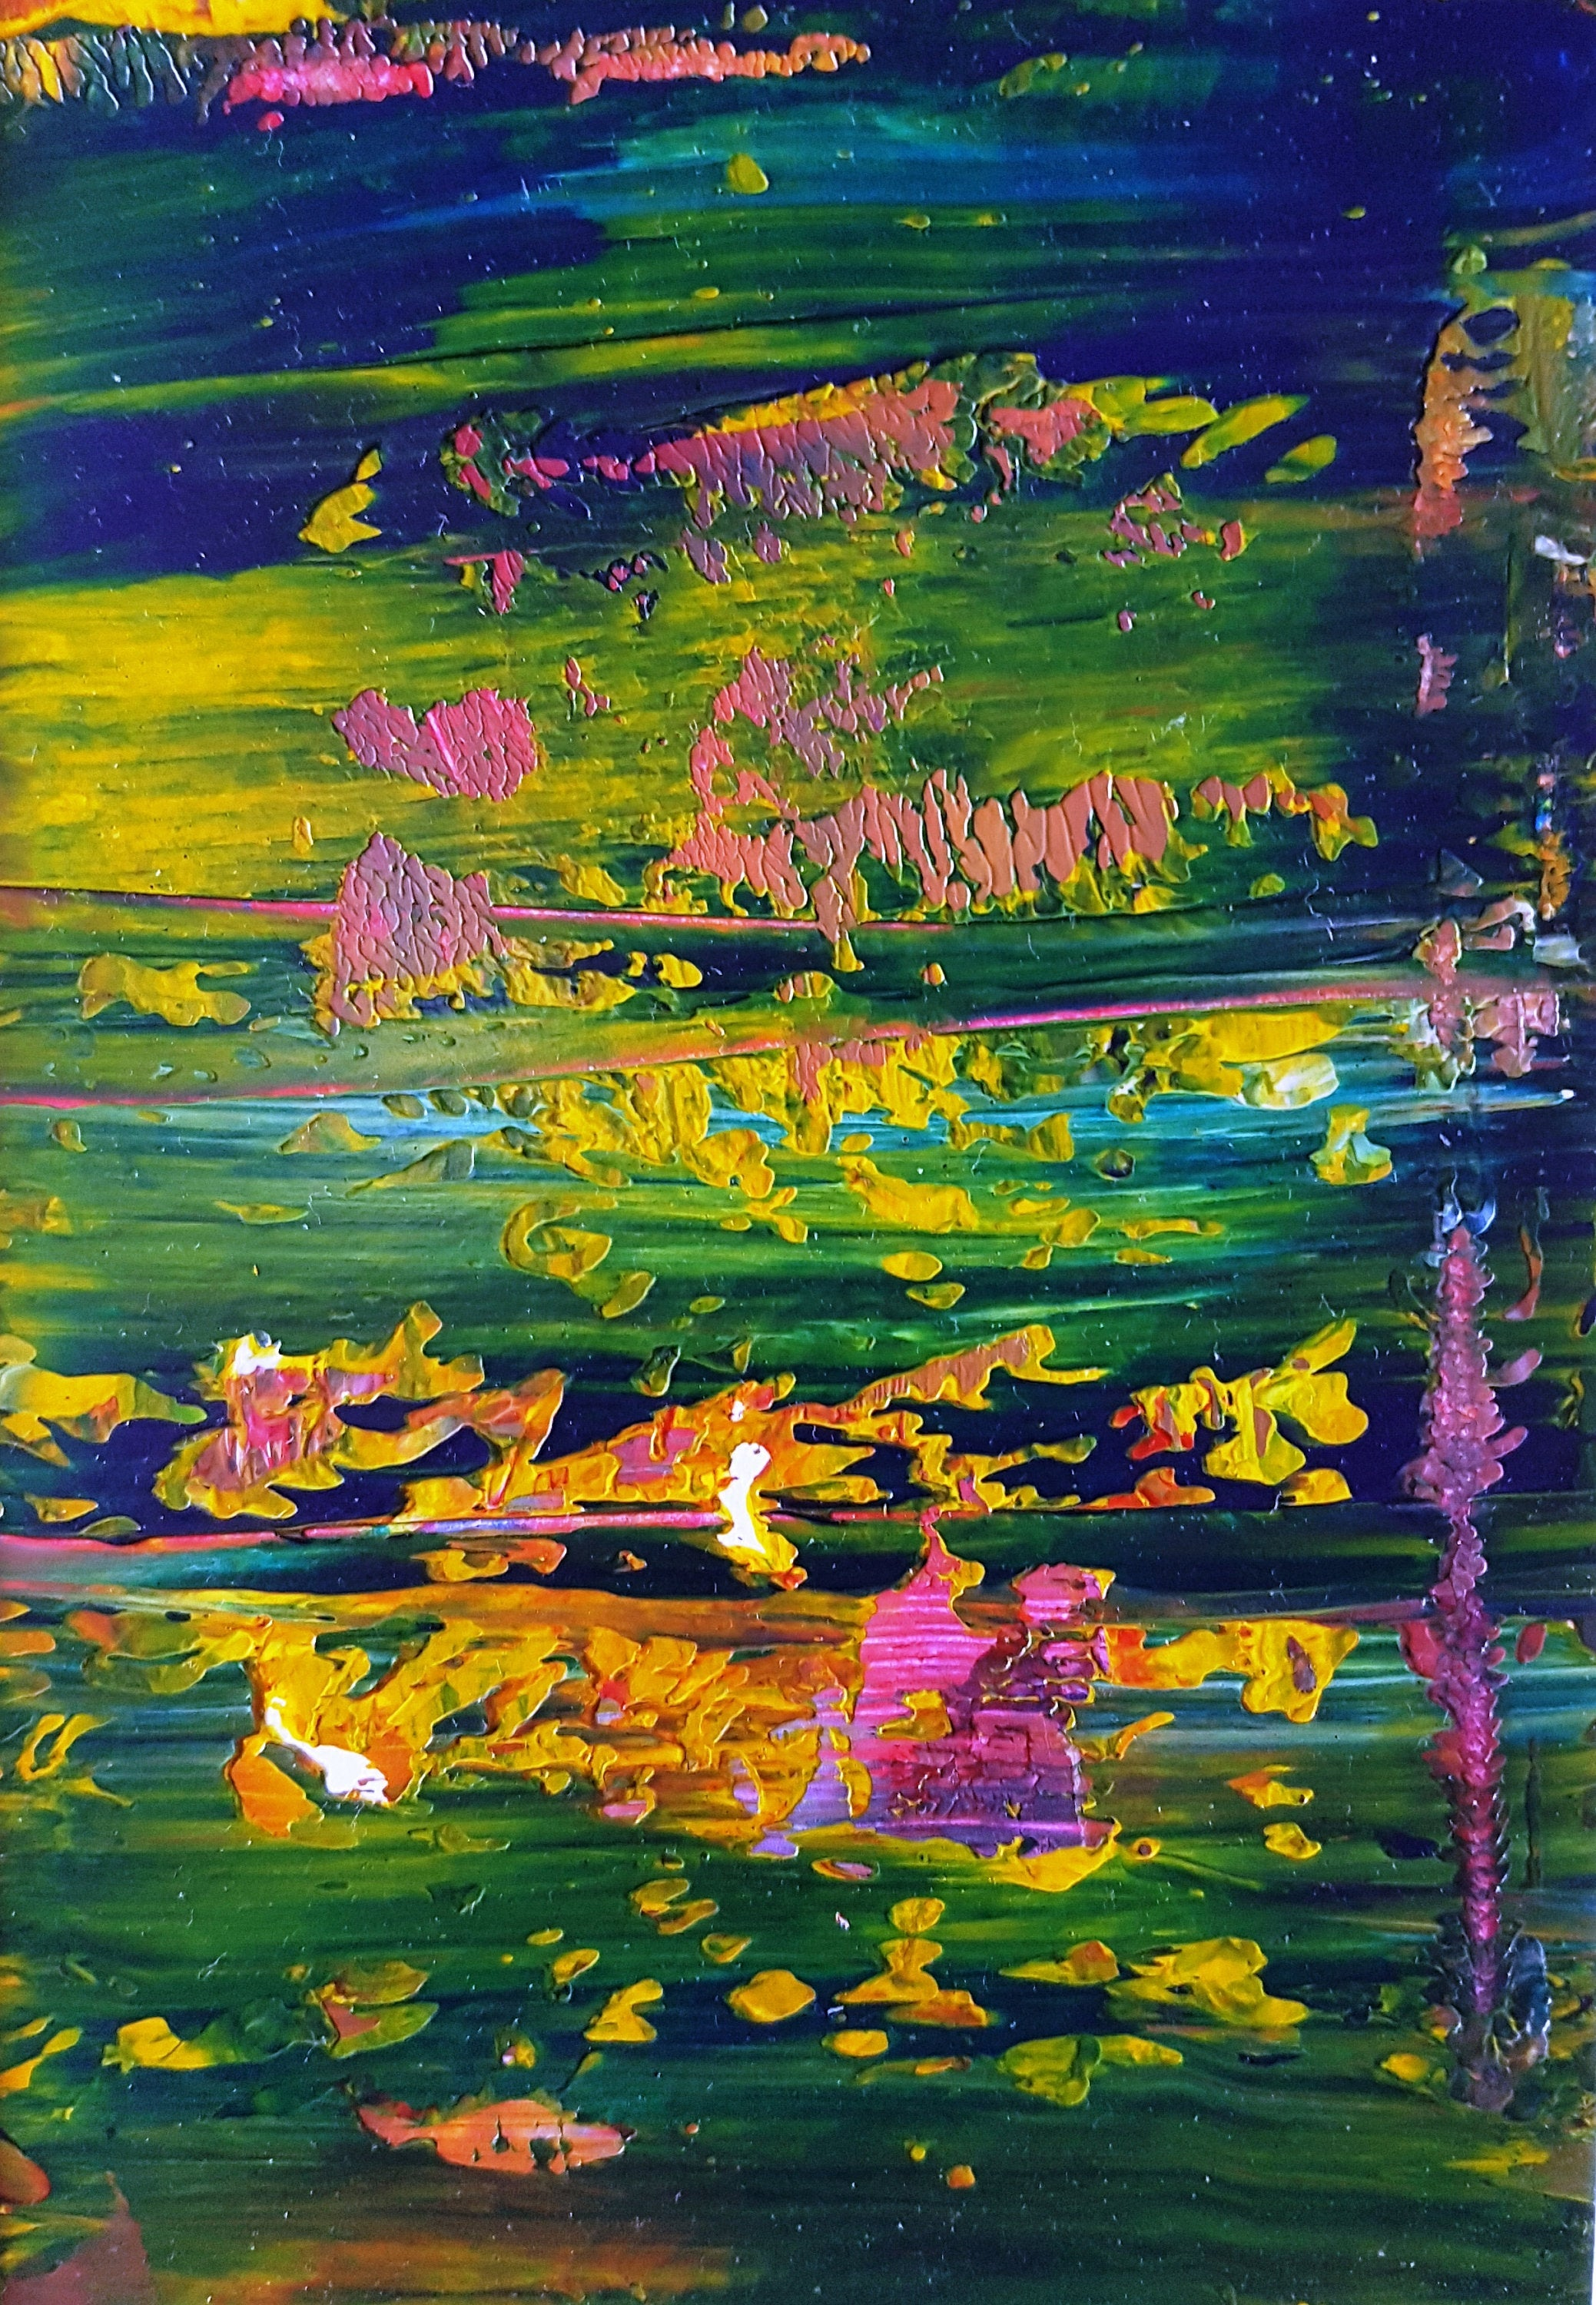 The Pond at Night Abstract Acrylic Painting